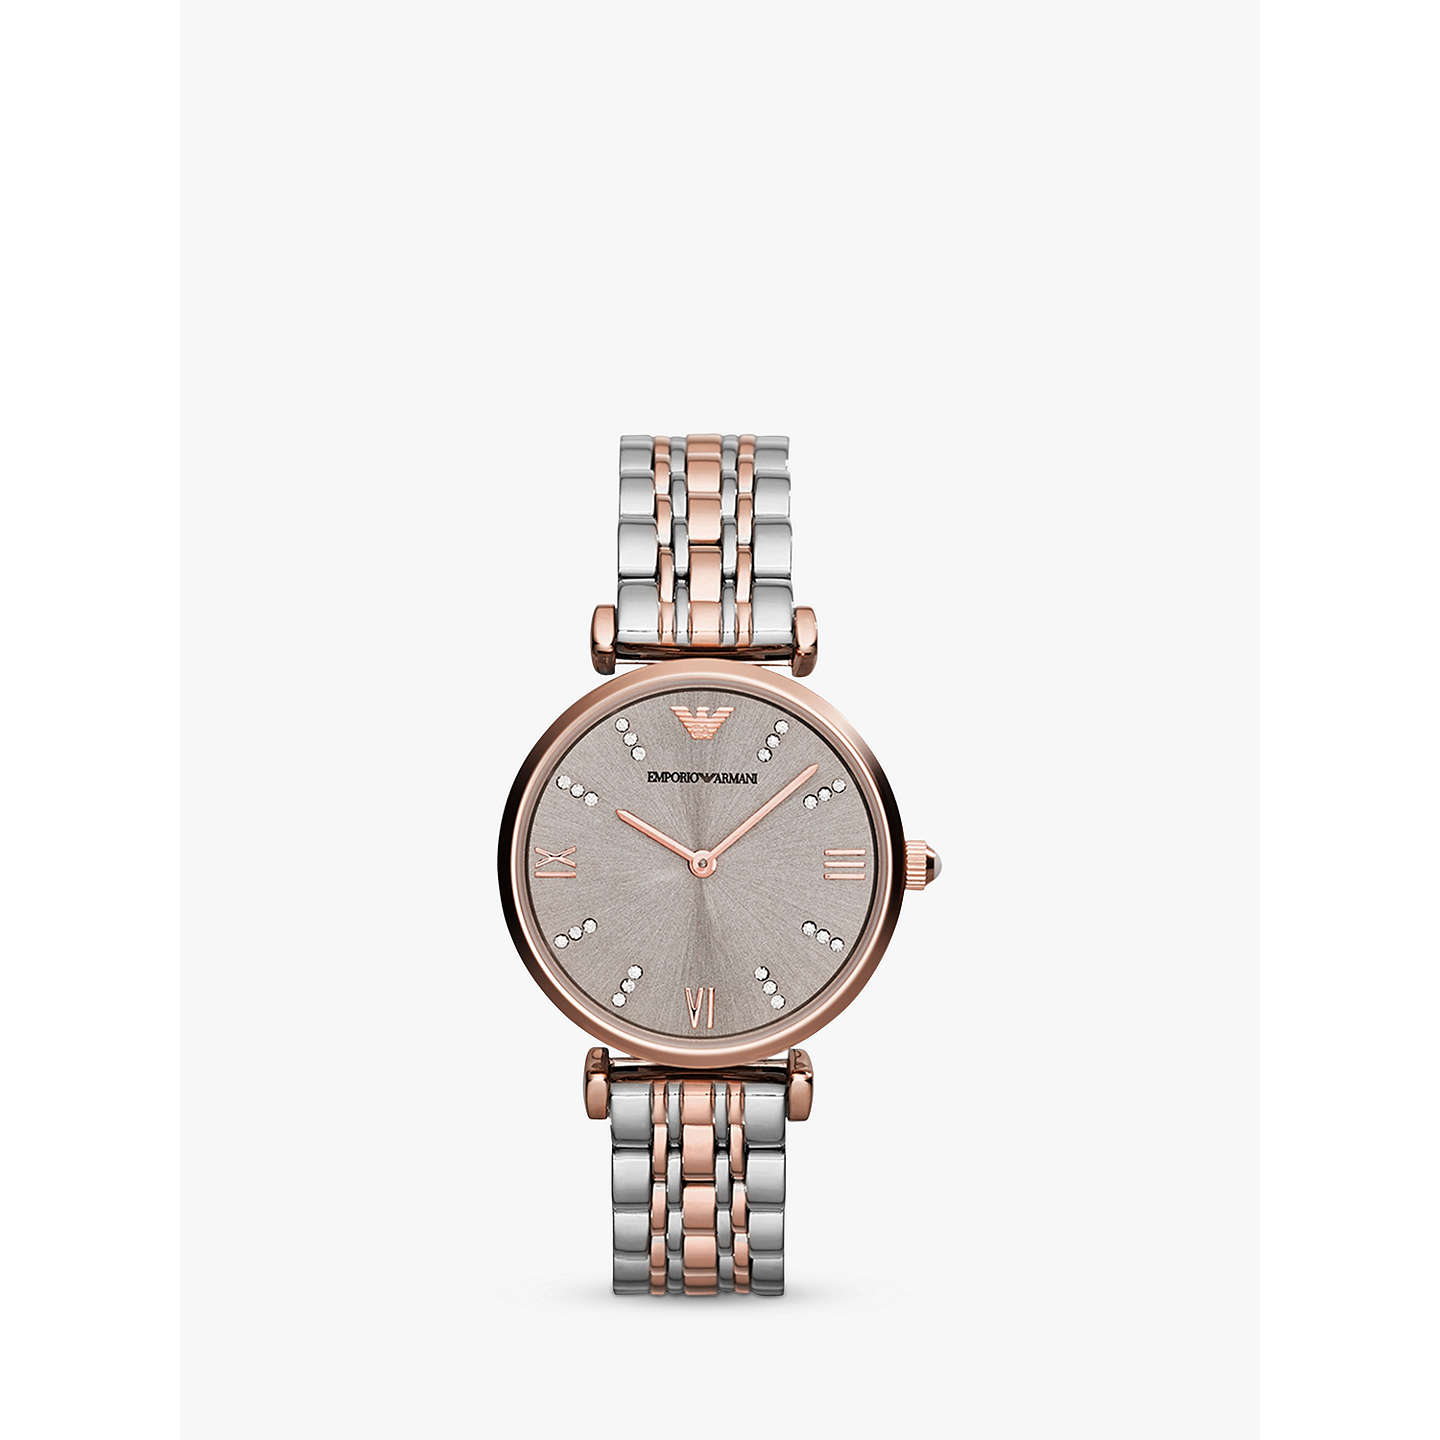 Emporio Armani Ar1840 Women's Two Tone Bracelet Strap Watch, Silver/Rose Gold by Emporio Armani